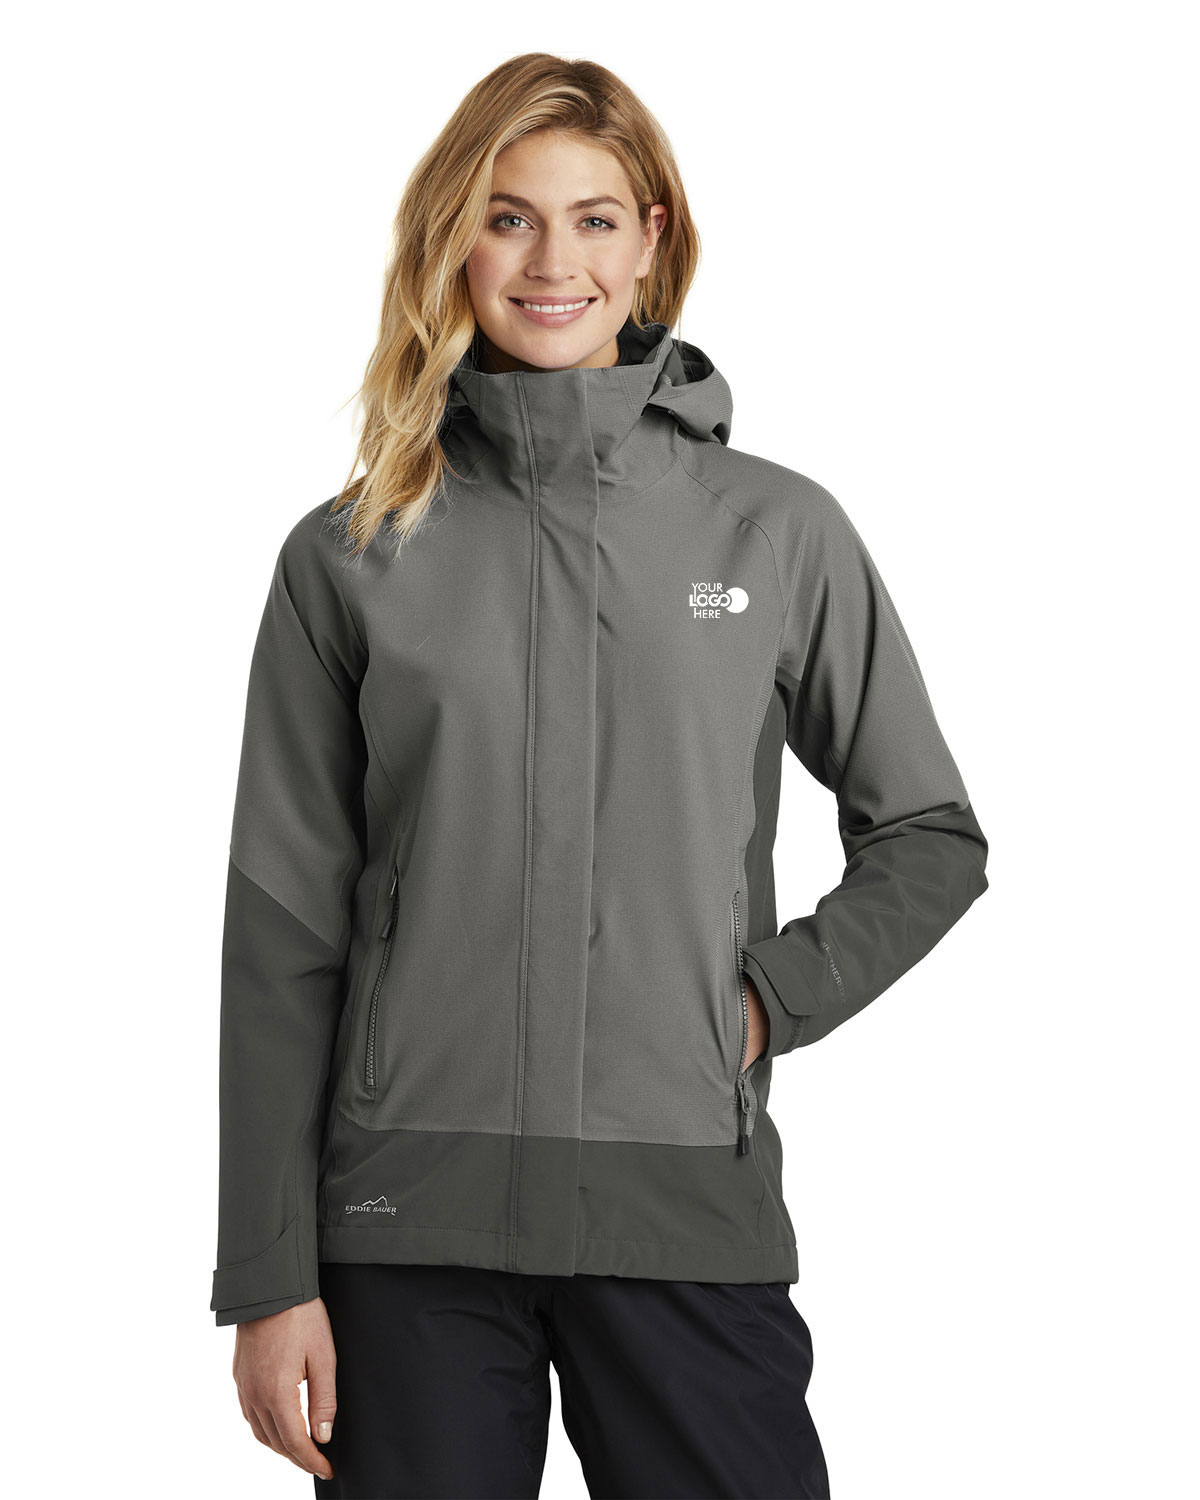 Eddie Bauer EB559 Women WeatherEdge Jacket